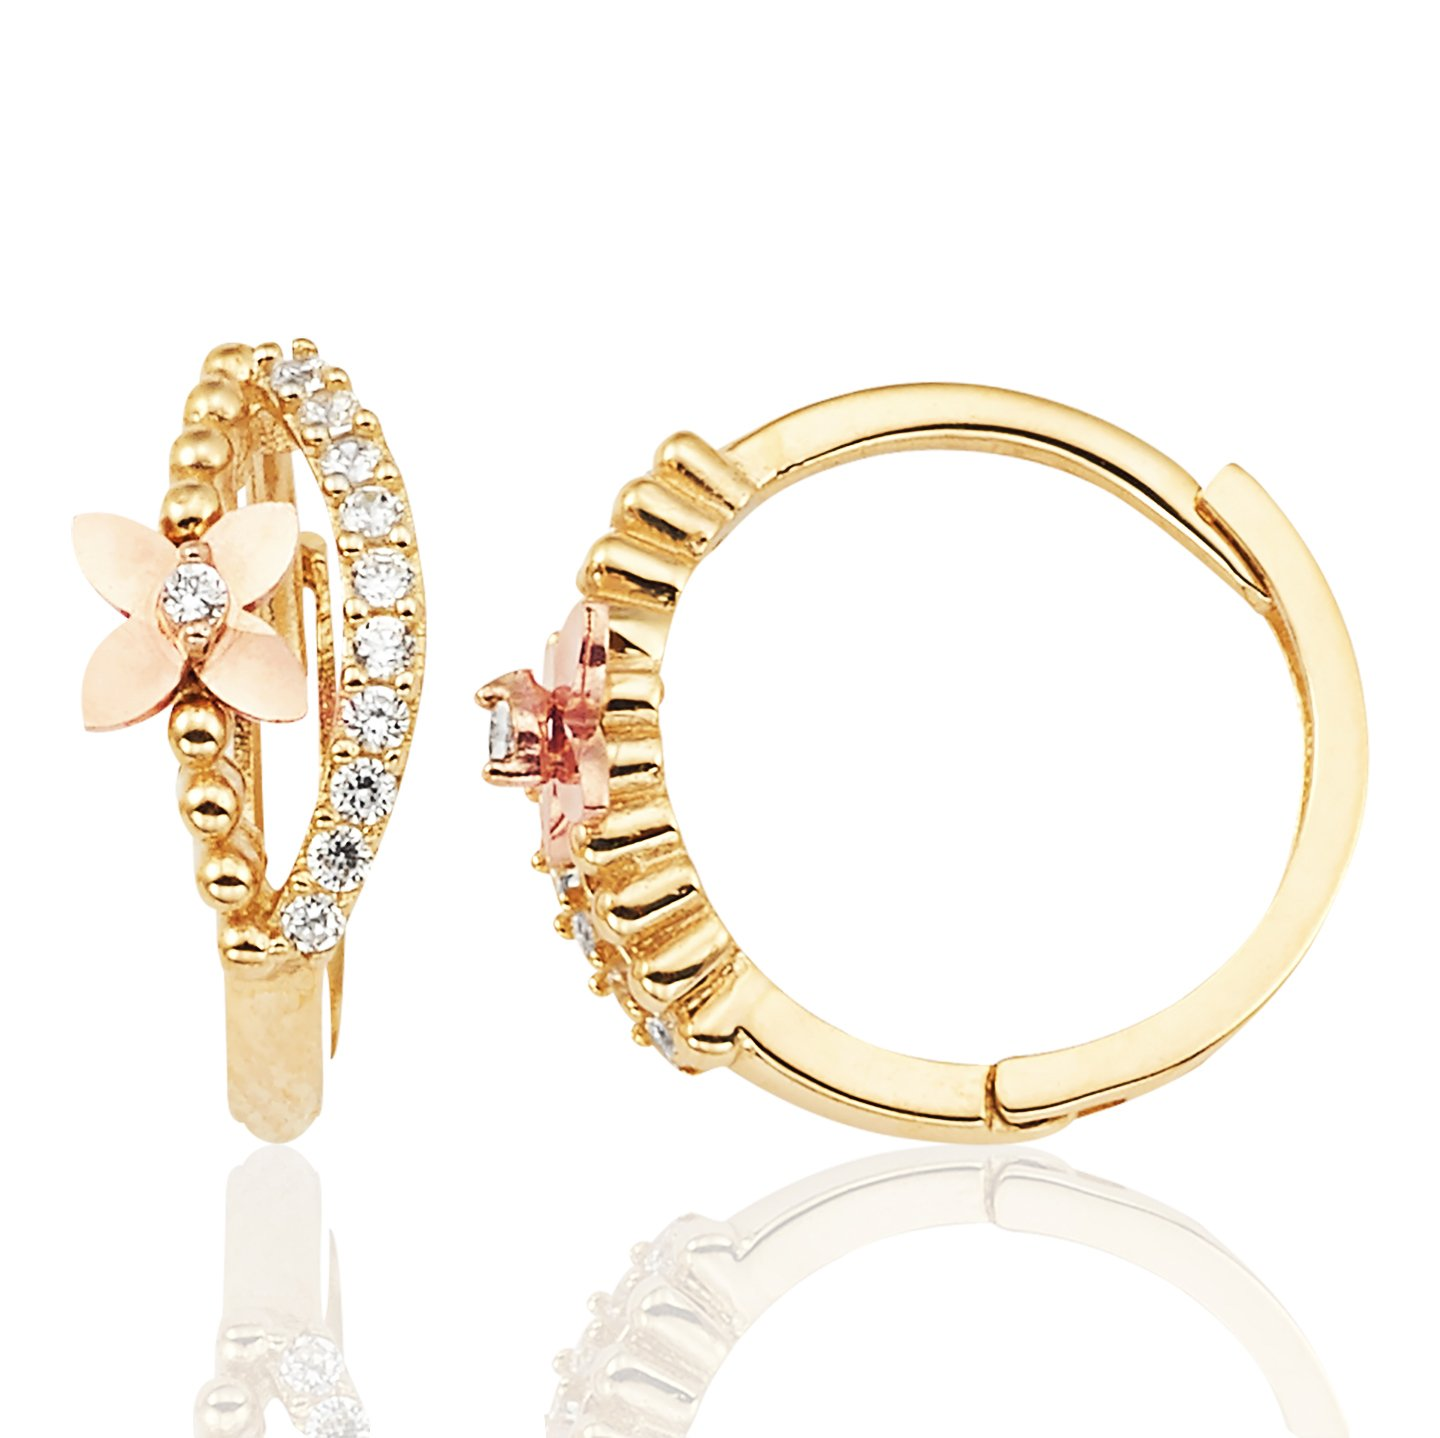 Beautiful Flower Huggie Earrings with CZ in 14K Yellow and Rose Gold for Women and Girls